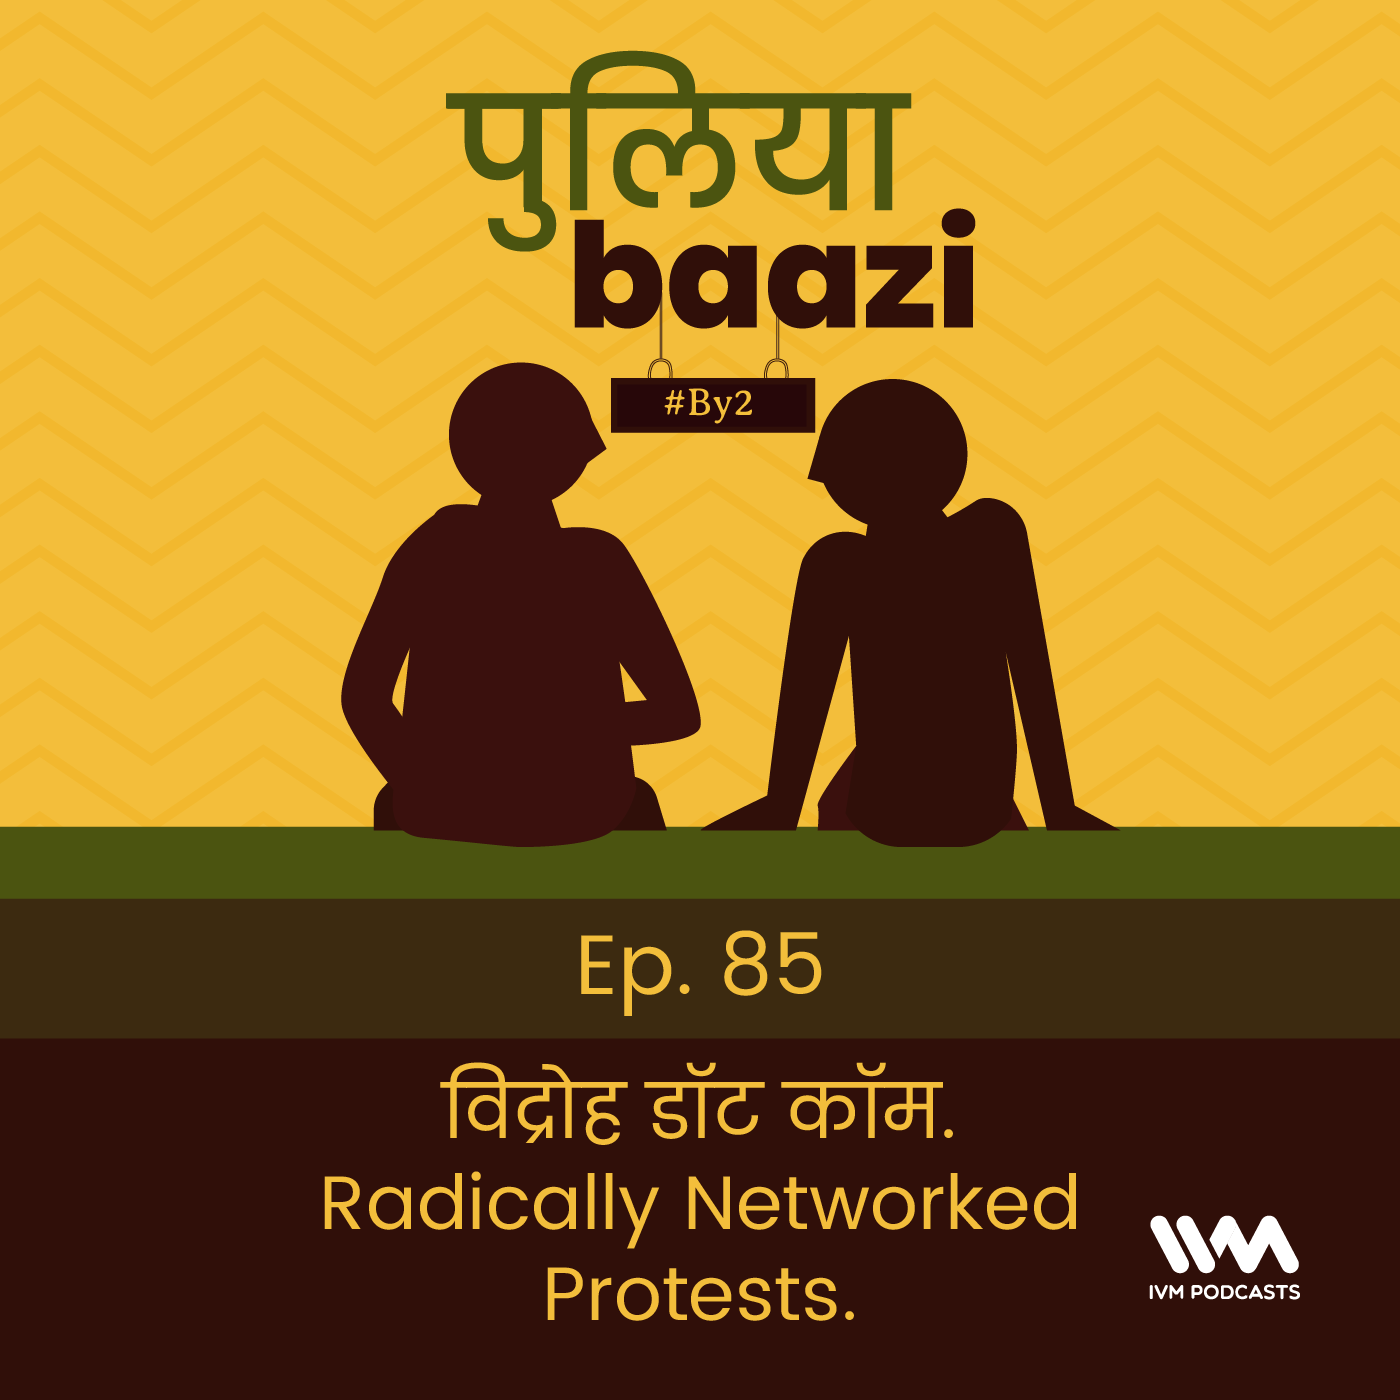 विद्रोह डॉट कॉम. Radically Networked Protests.